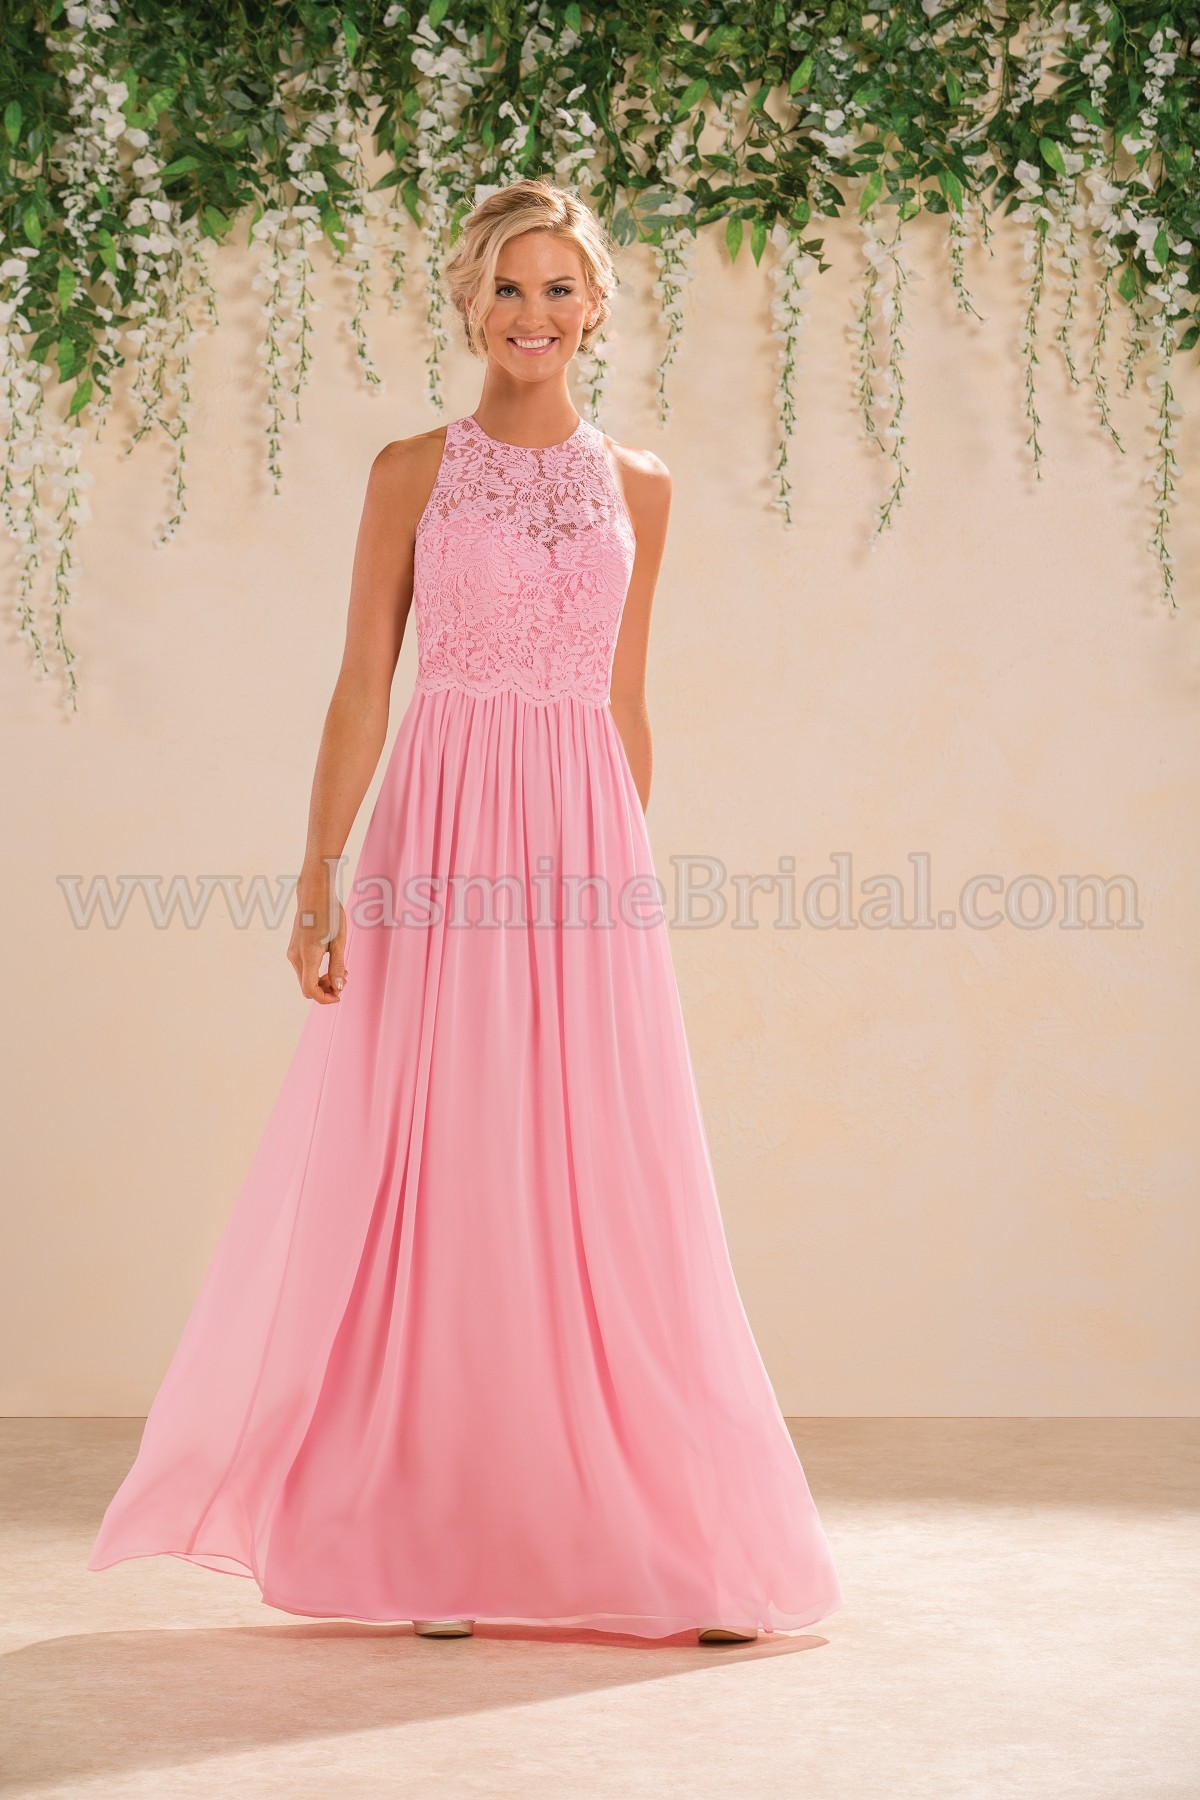 B183017 Long Jewel Neckline Lace & Poly Chiffon Bridesmaid Dress